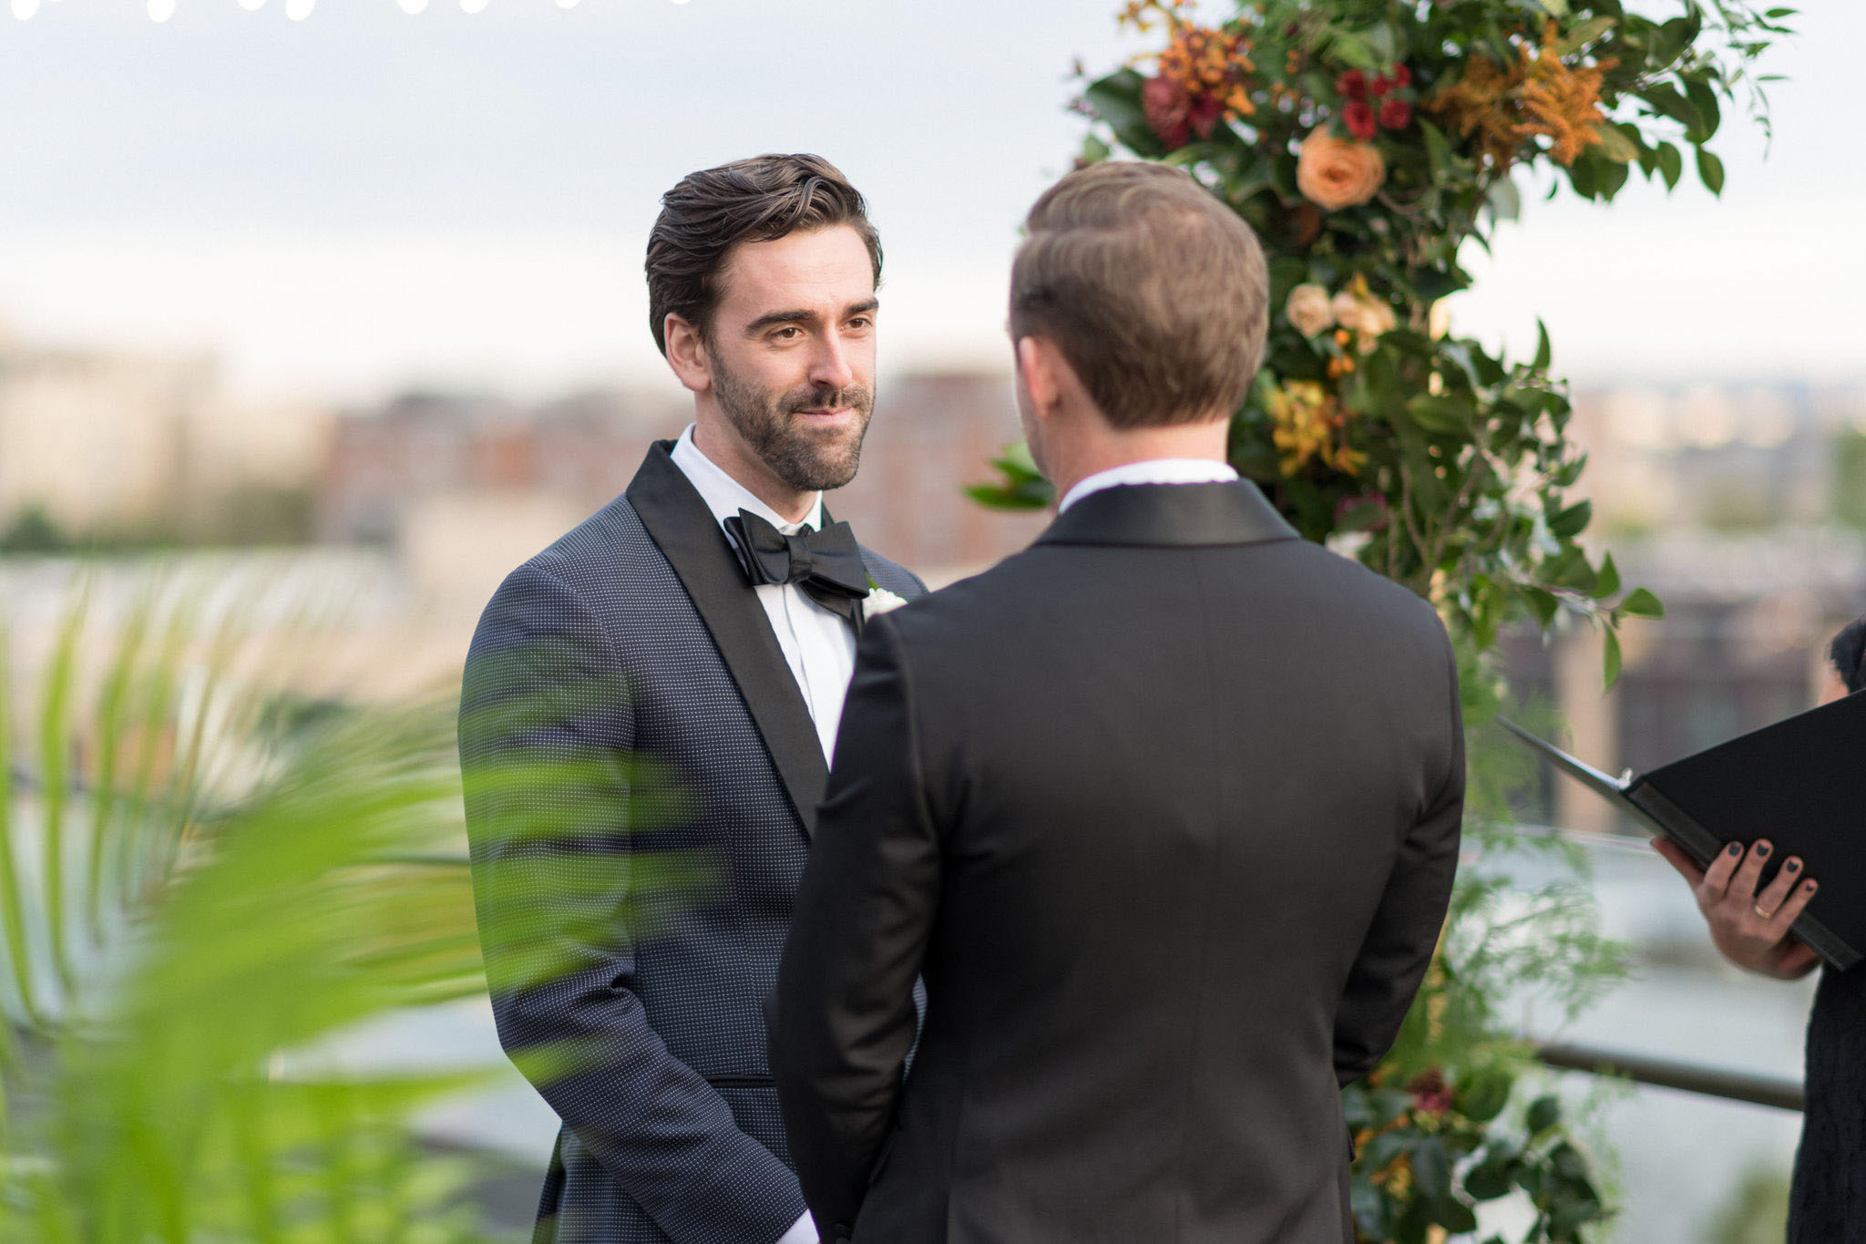 grooms looking at each other during wedding ceremony vows